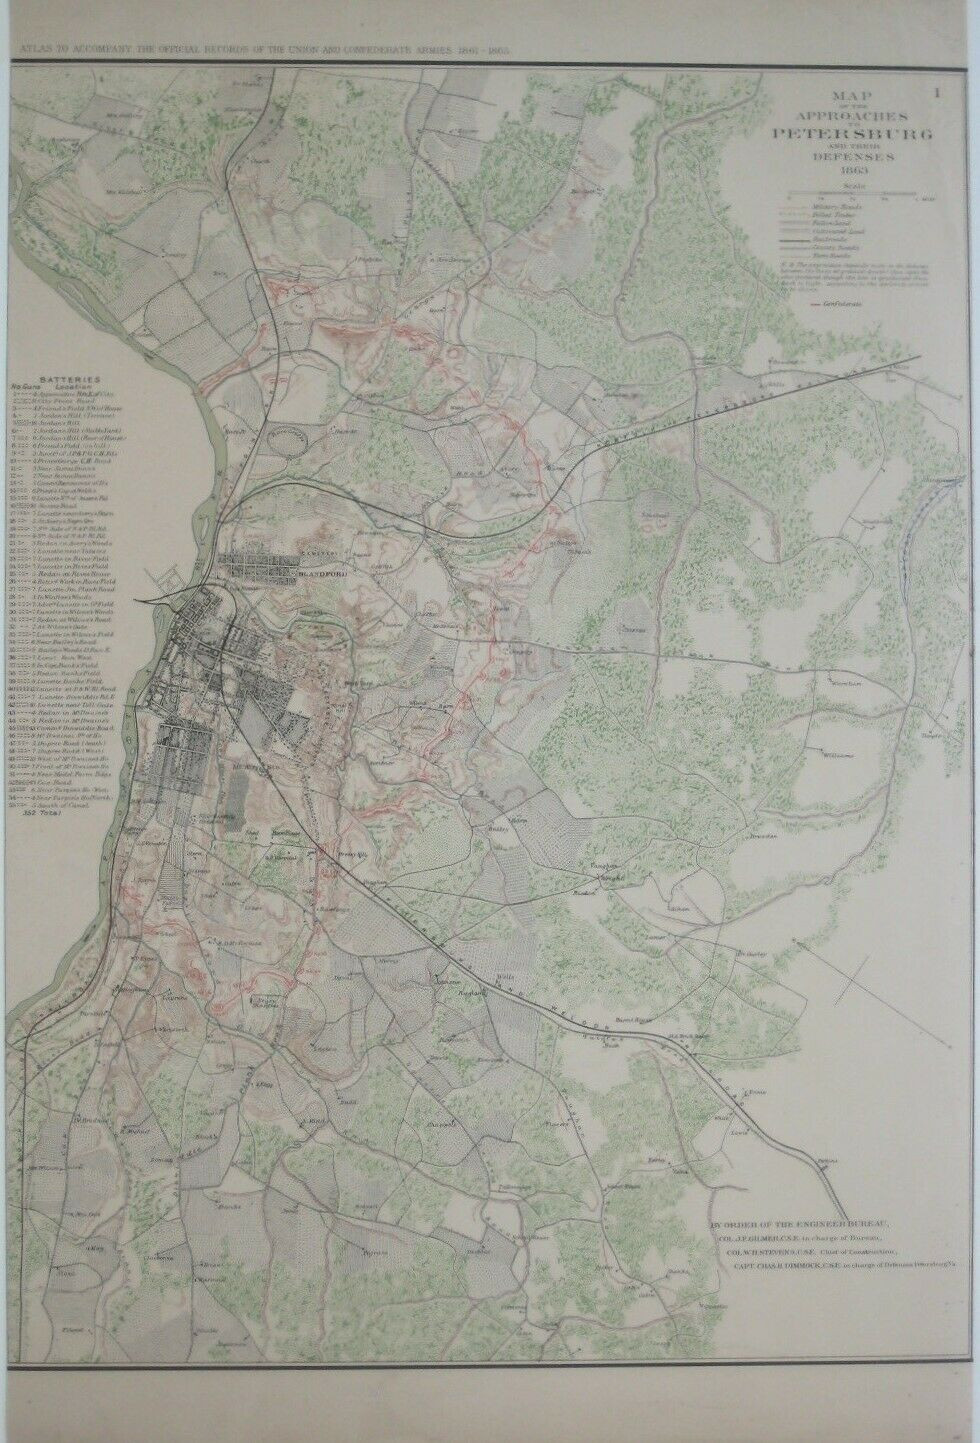 Original antique color lithographed Civil War map showing the approaches to Petersburg and the Rebel batteries comprising the Dimmock Line, printed more than 125 years ago.